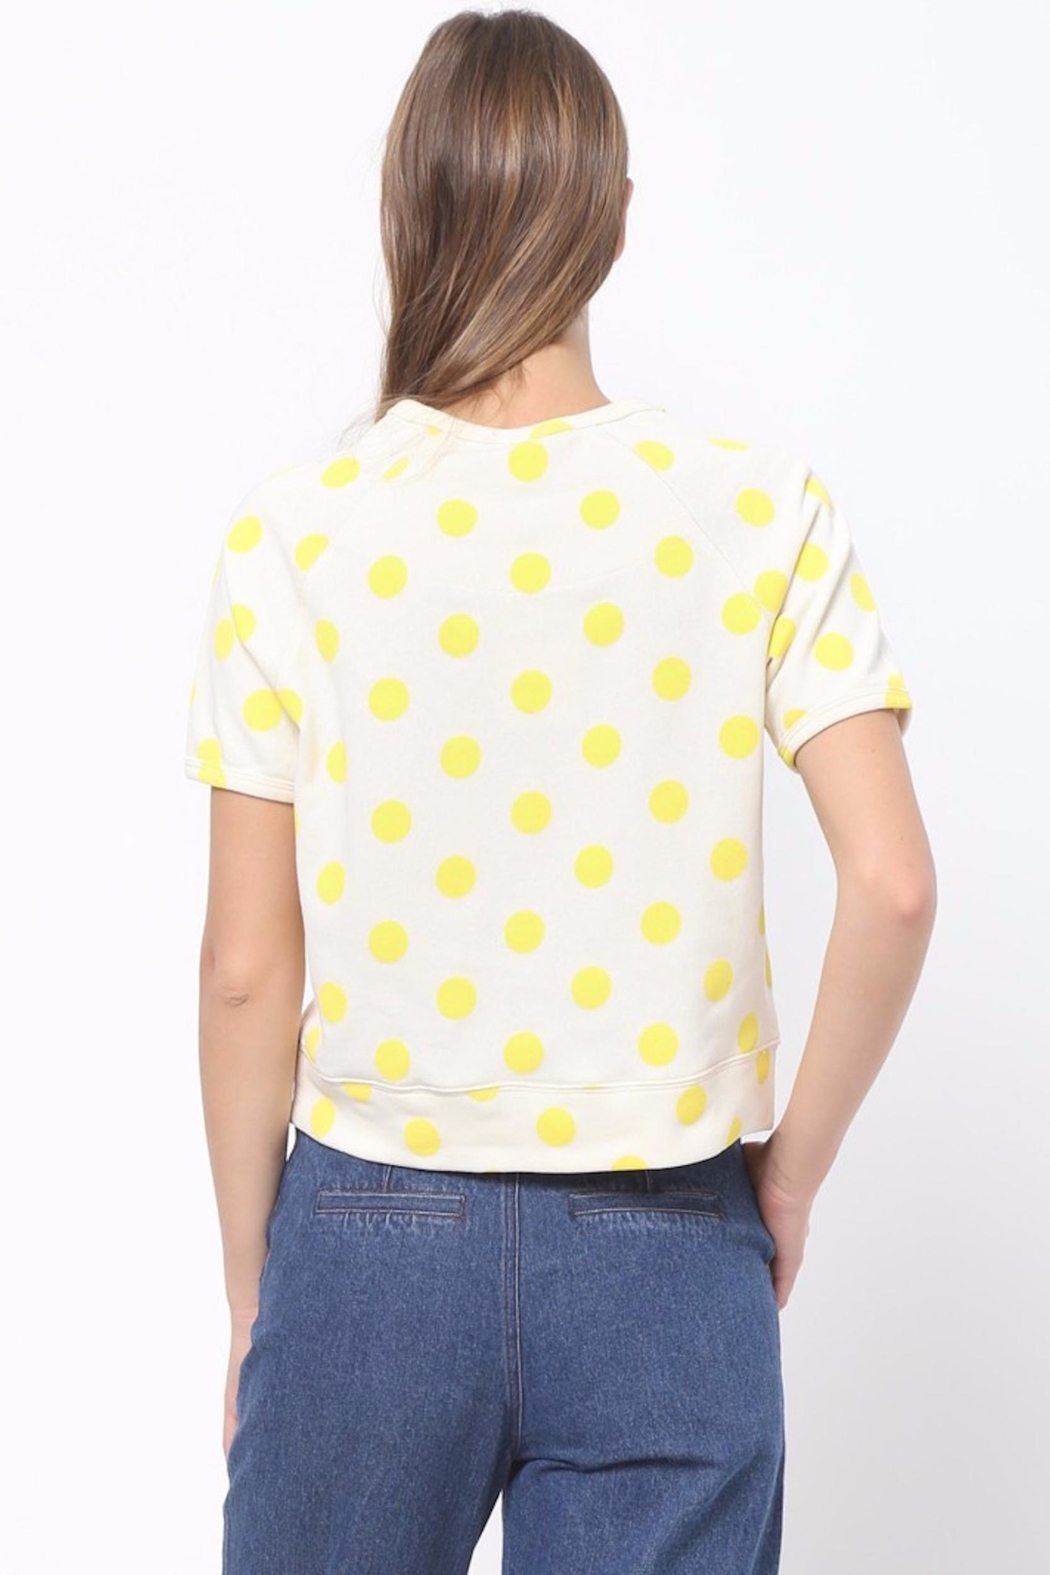 Scout Clothing & Decor Yellow Polkadot Tee - Front Full Image